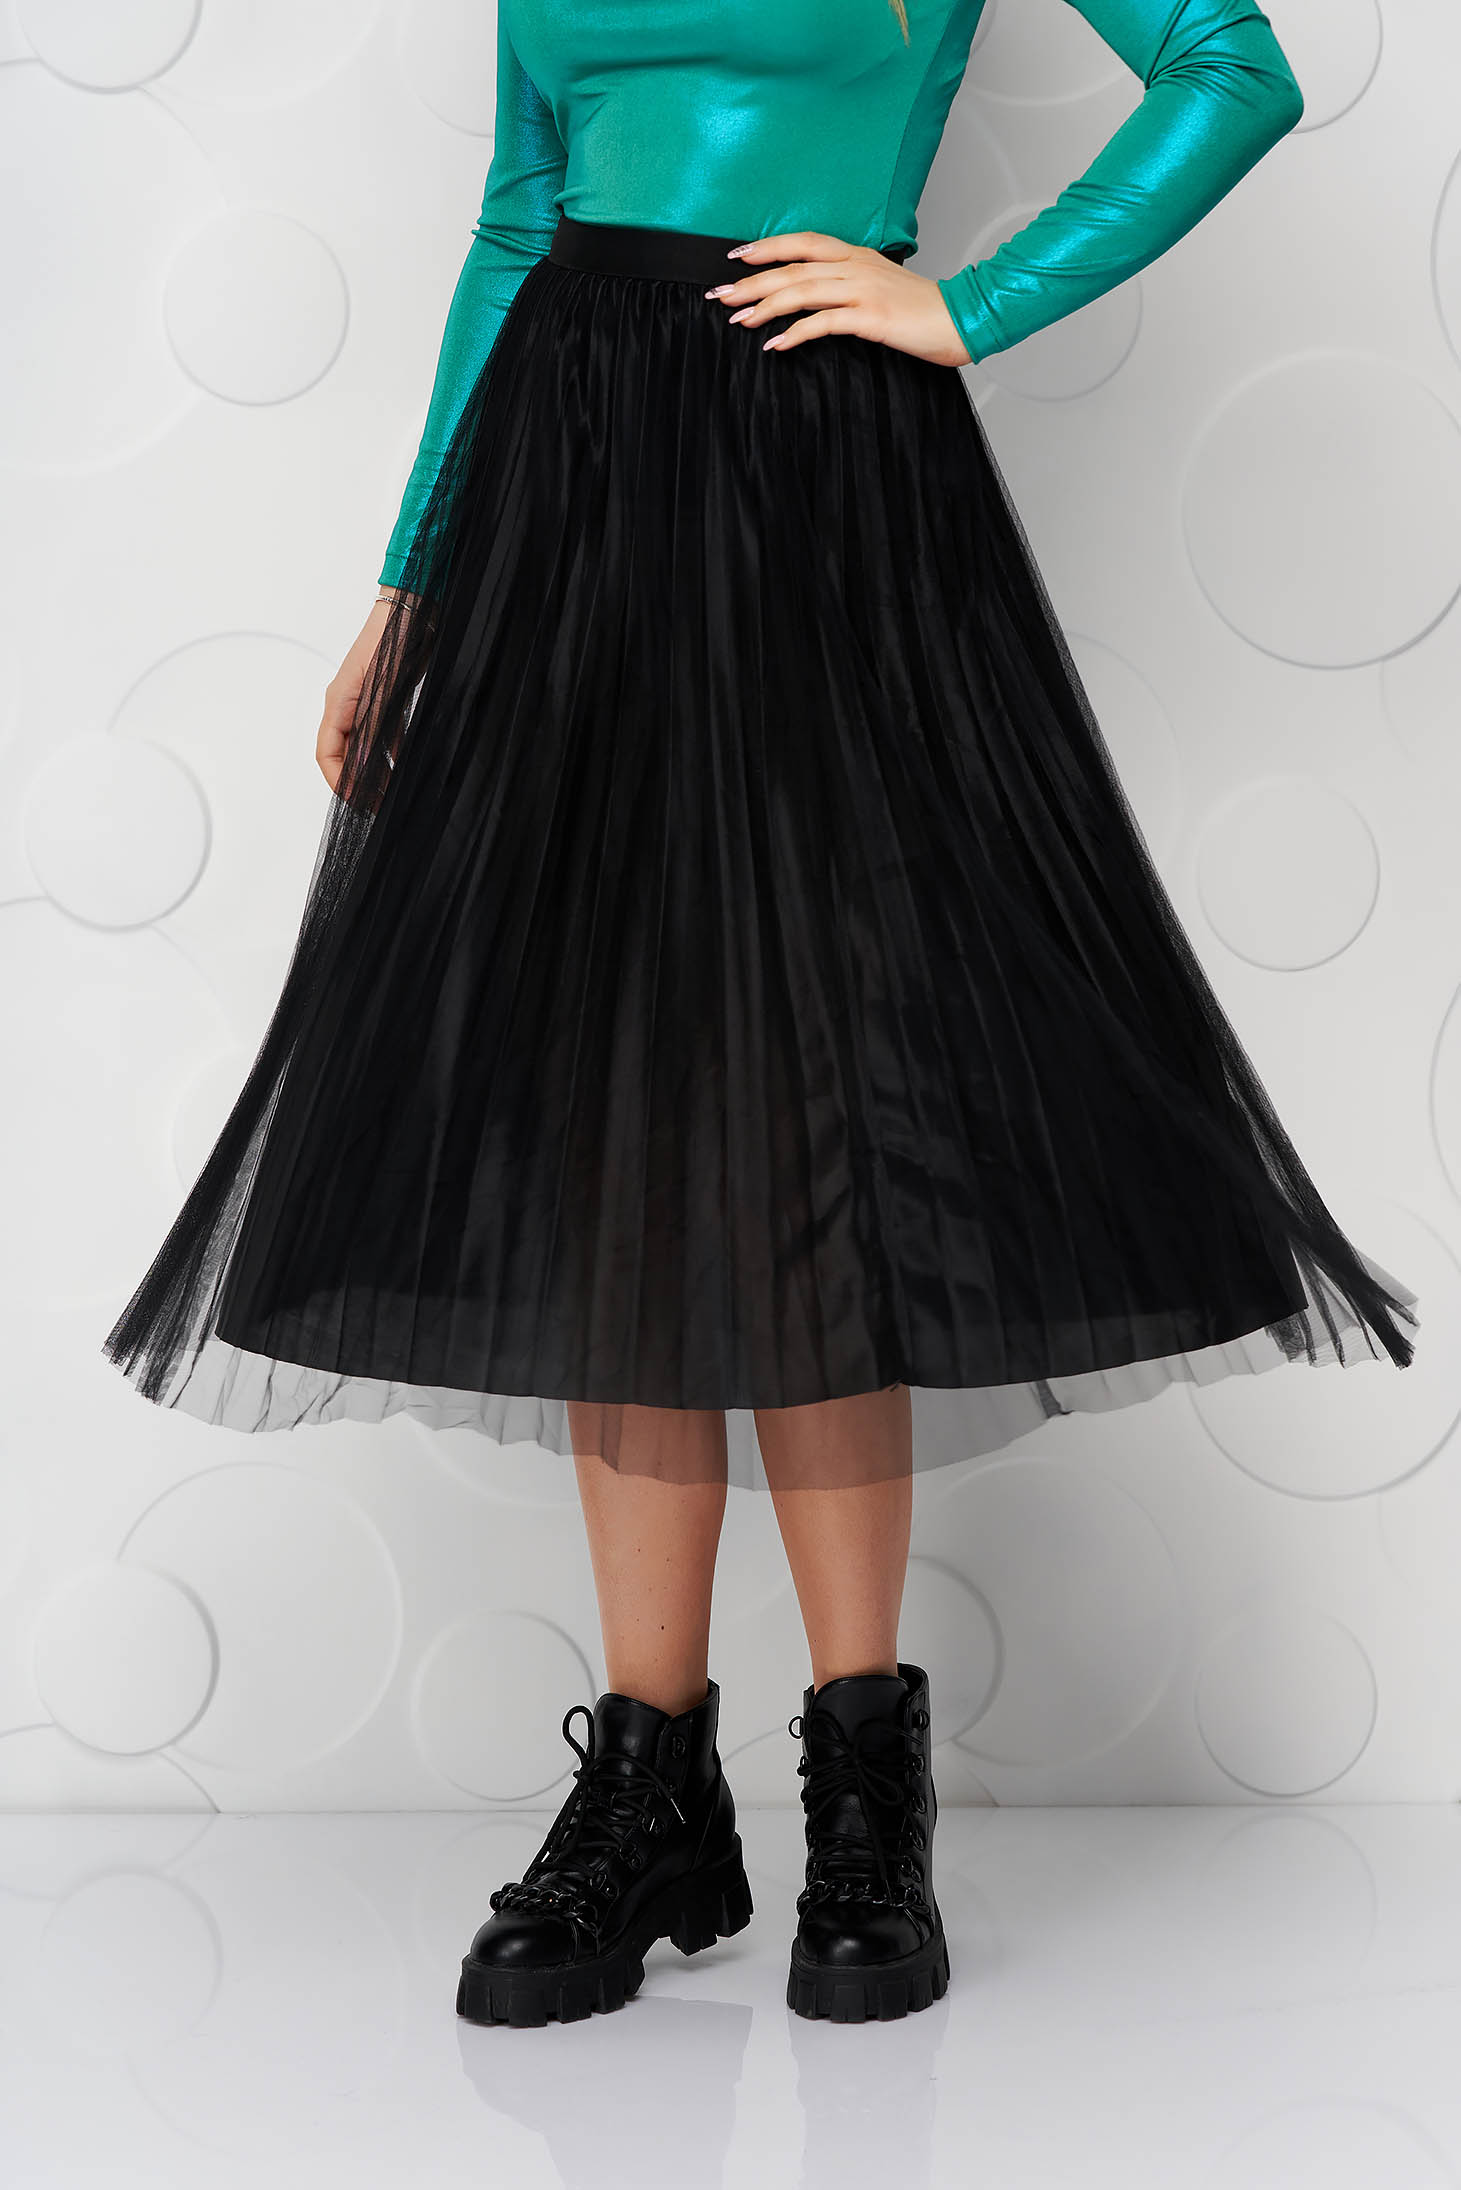 Black skirt midi from tulle from satin folded up clubbing double-faced